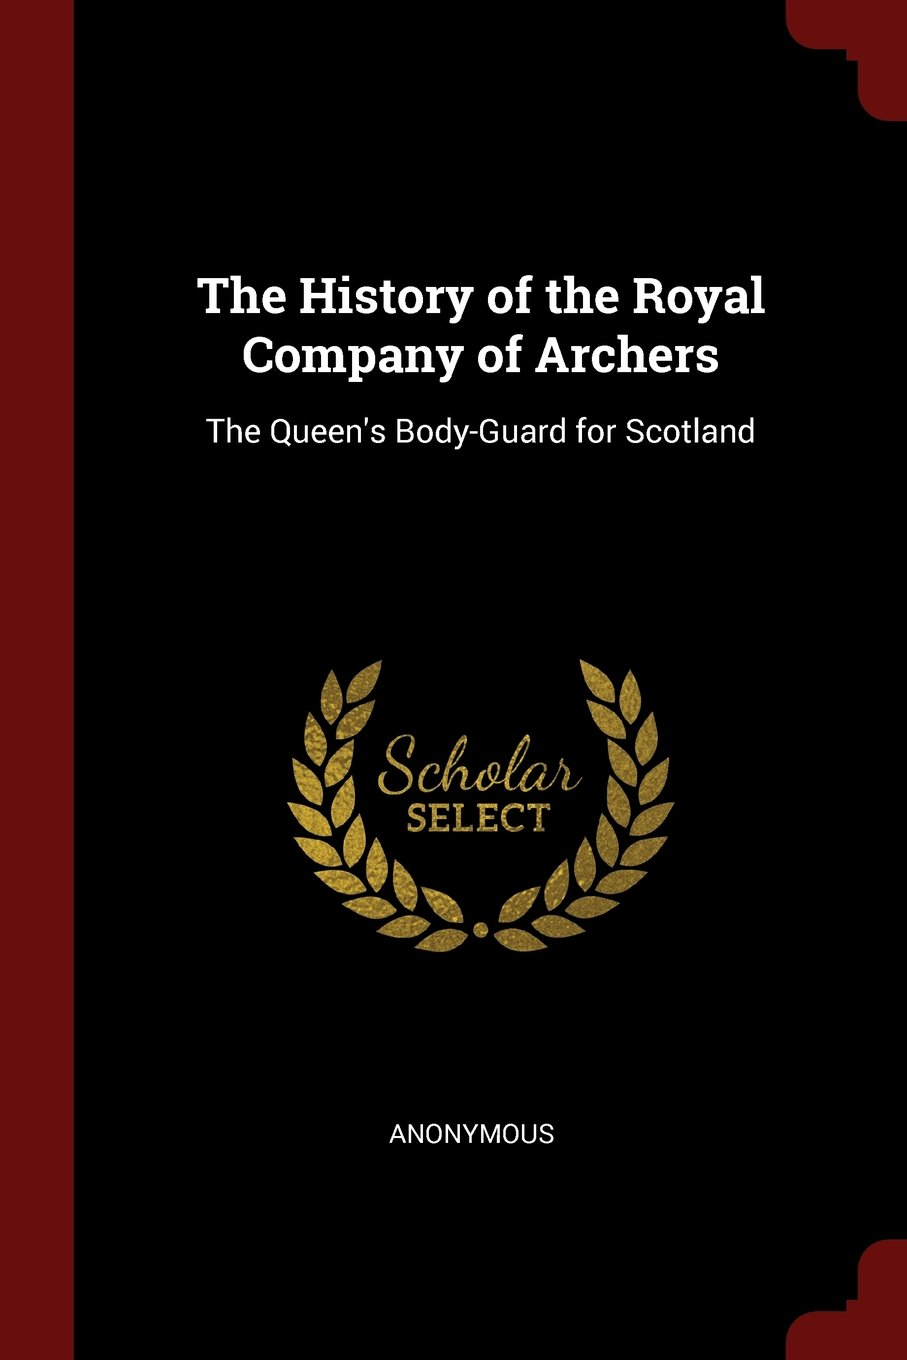 The History of the Royal Company of Archers: The Queen's Body-Guard for Scotland PDF